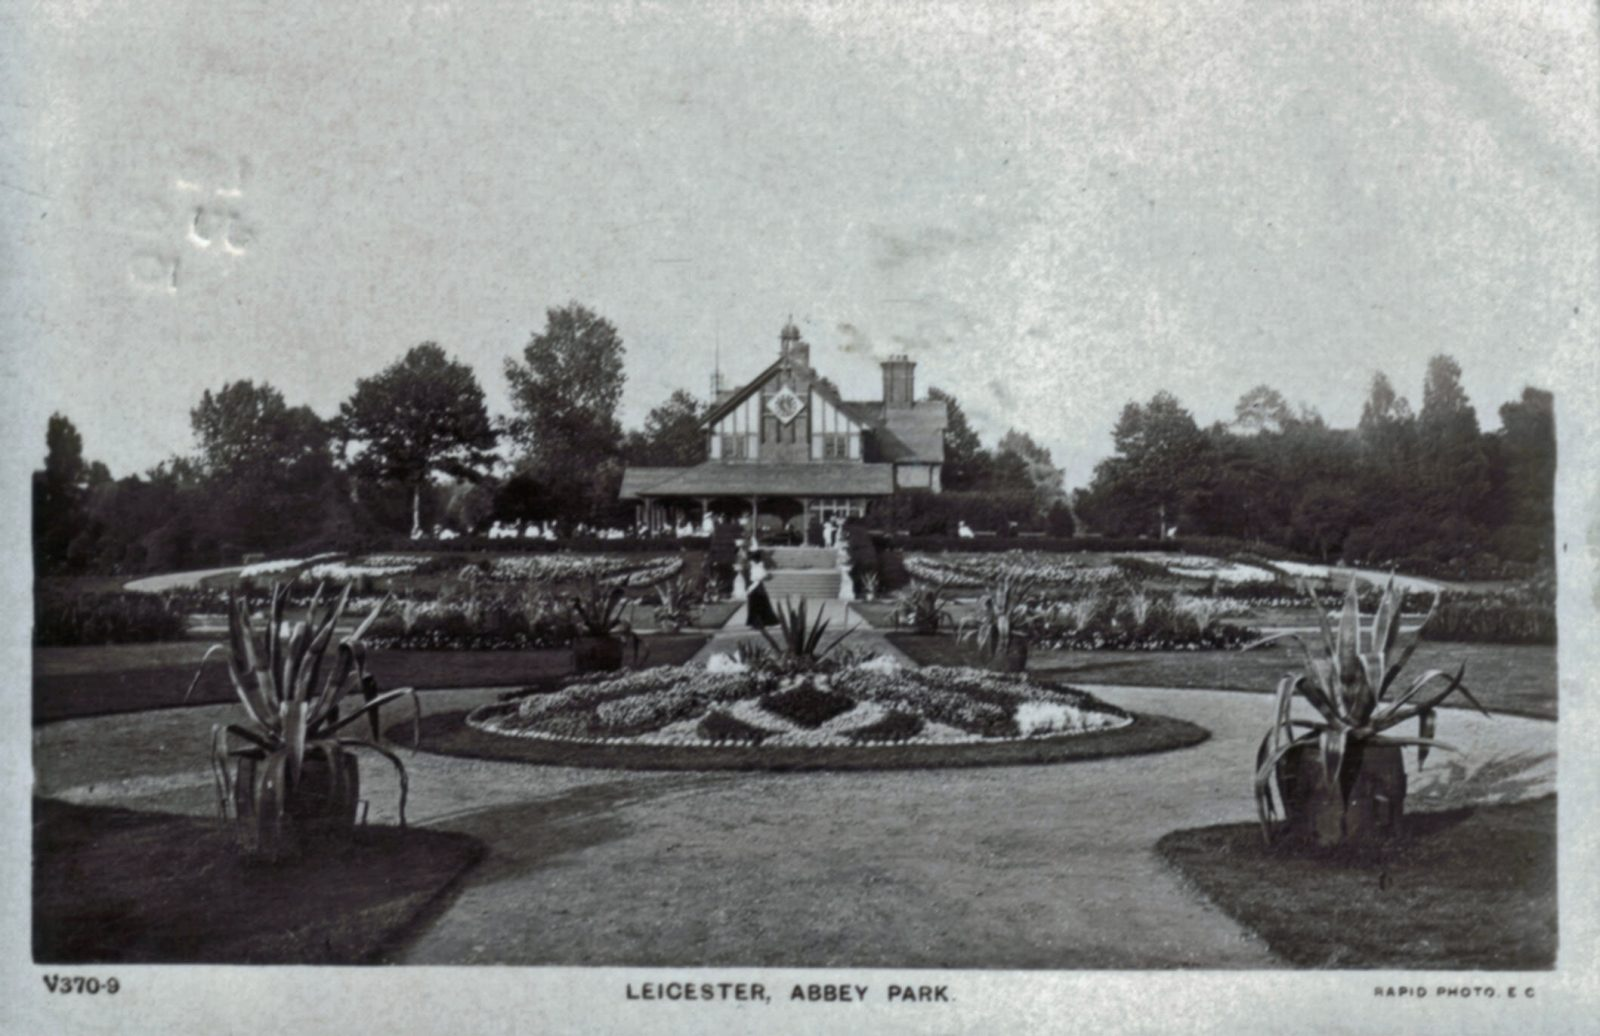 Abbey Park, Leicester. 1901-1920: Pavilion and carpet bedding. Franked 1910 (File:1030)